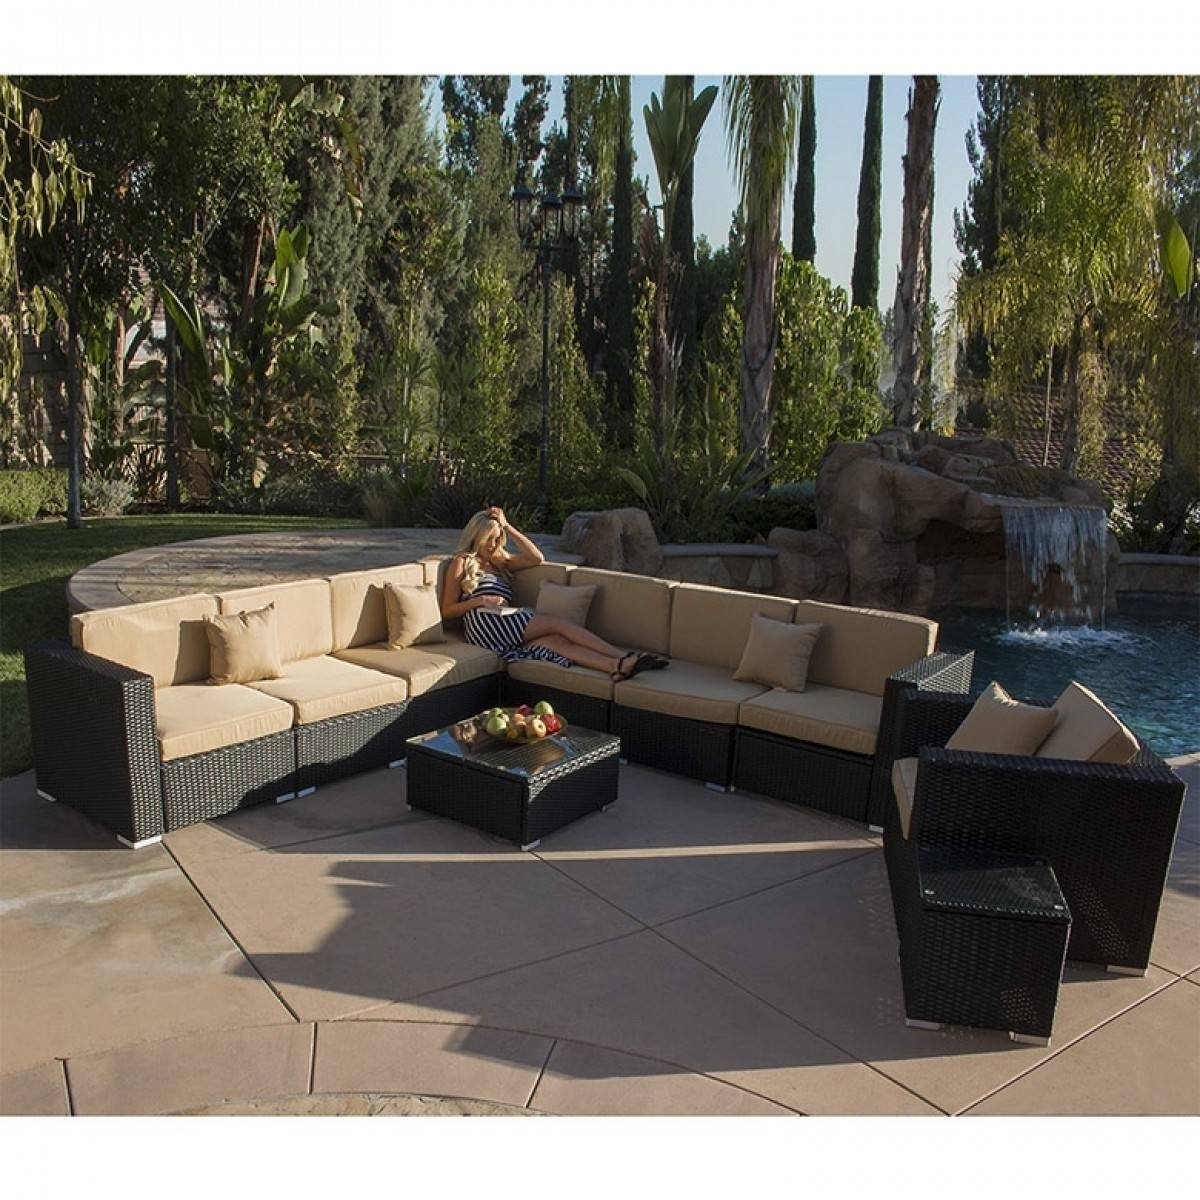 10Pc Outdoor Patio Aluminum Rattan Wicker Furniture Sectional Sofa intended for 10 Piece Sectional Sofa (Image 5 of 30)